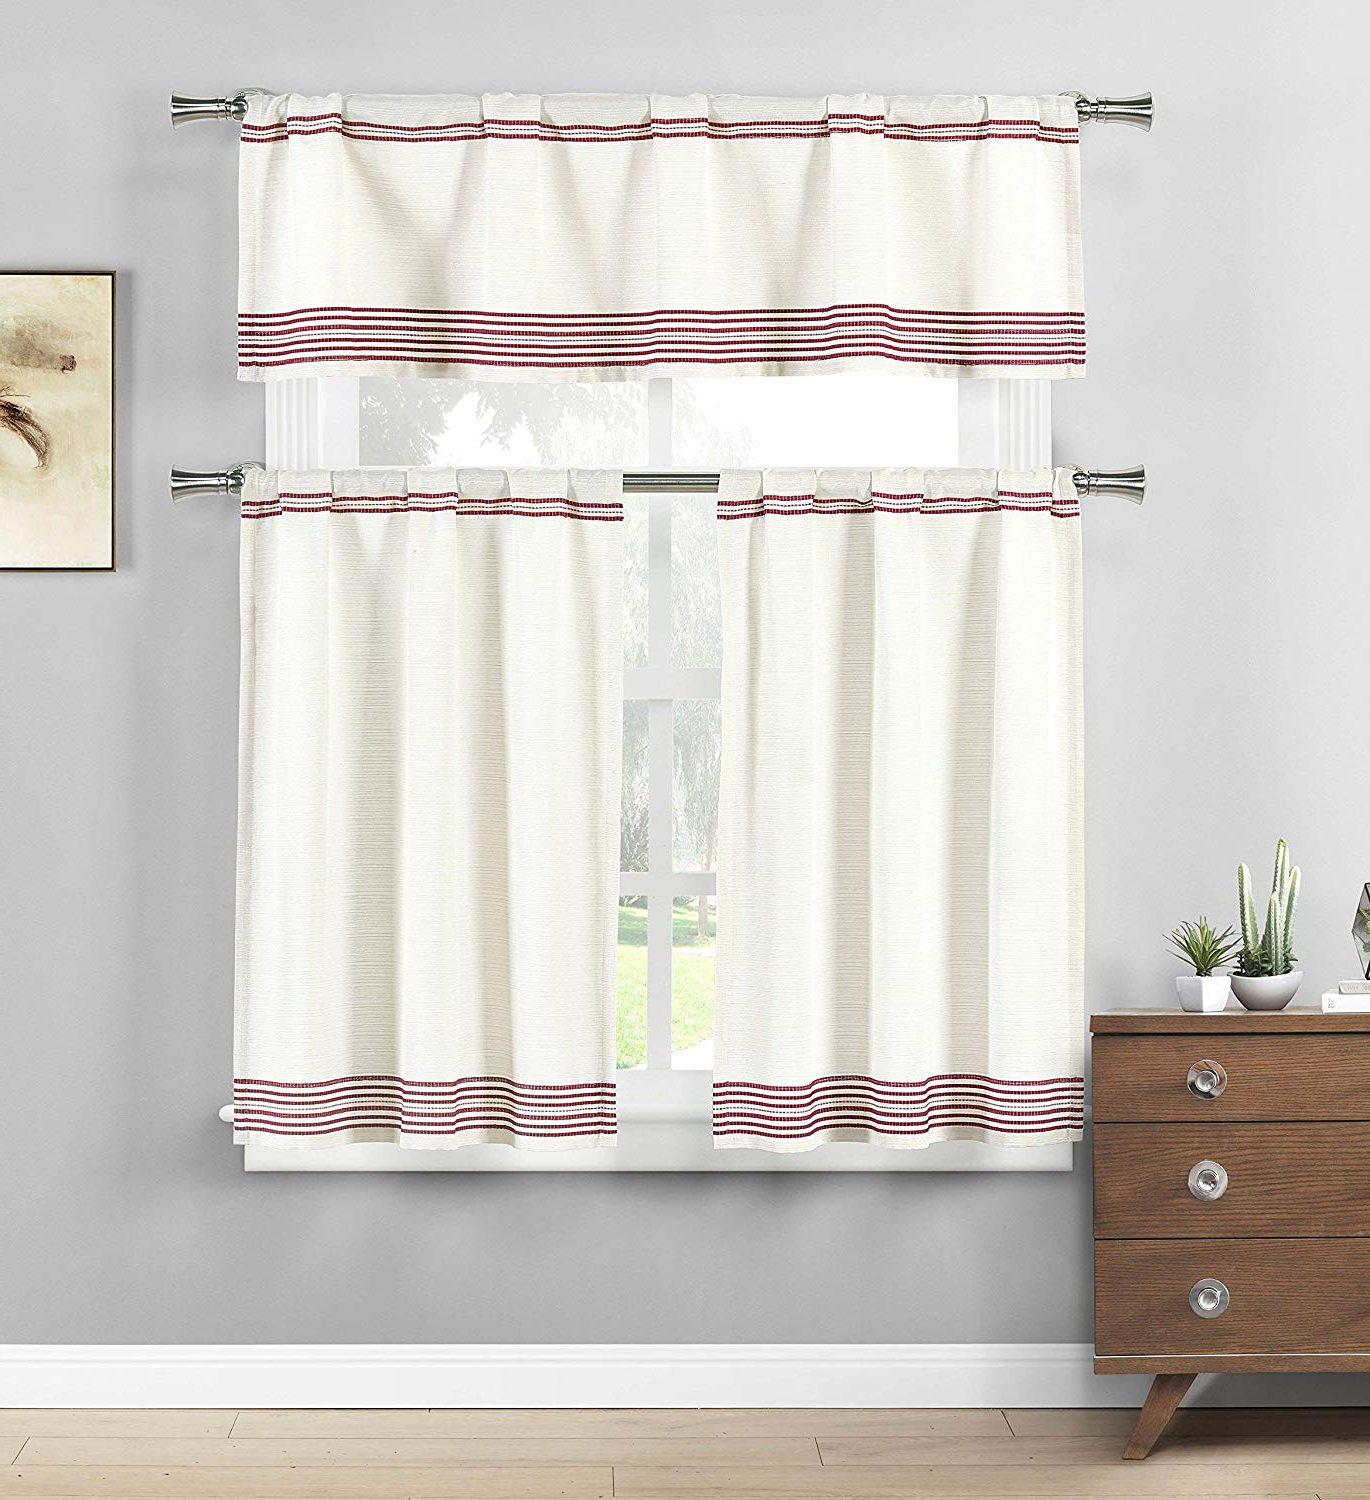 Most Current Kitchen Burgundy/white Curtain Sets Throughout Three Piece Cotton Rich Kitchen/cafe Tier Window Curtain Set: Off White  With Stripe Pattern (Burgundy) (Gallery 2 of 20)